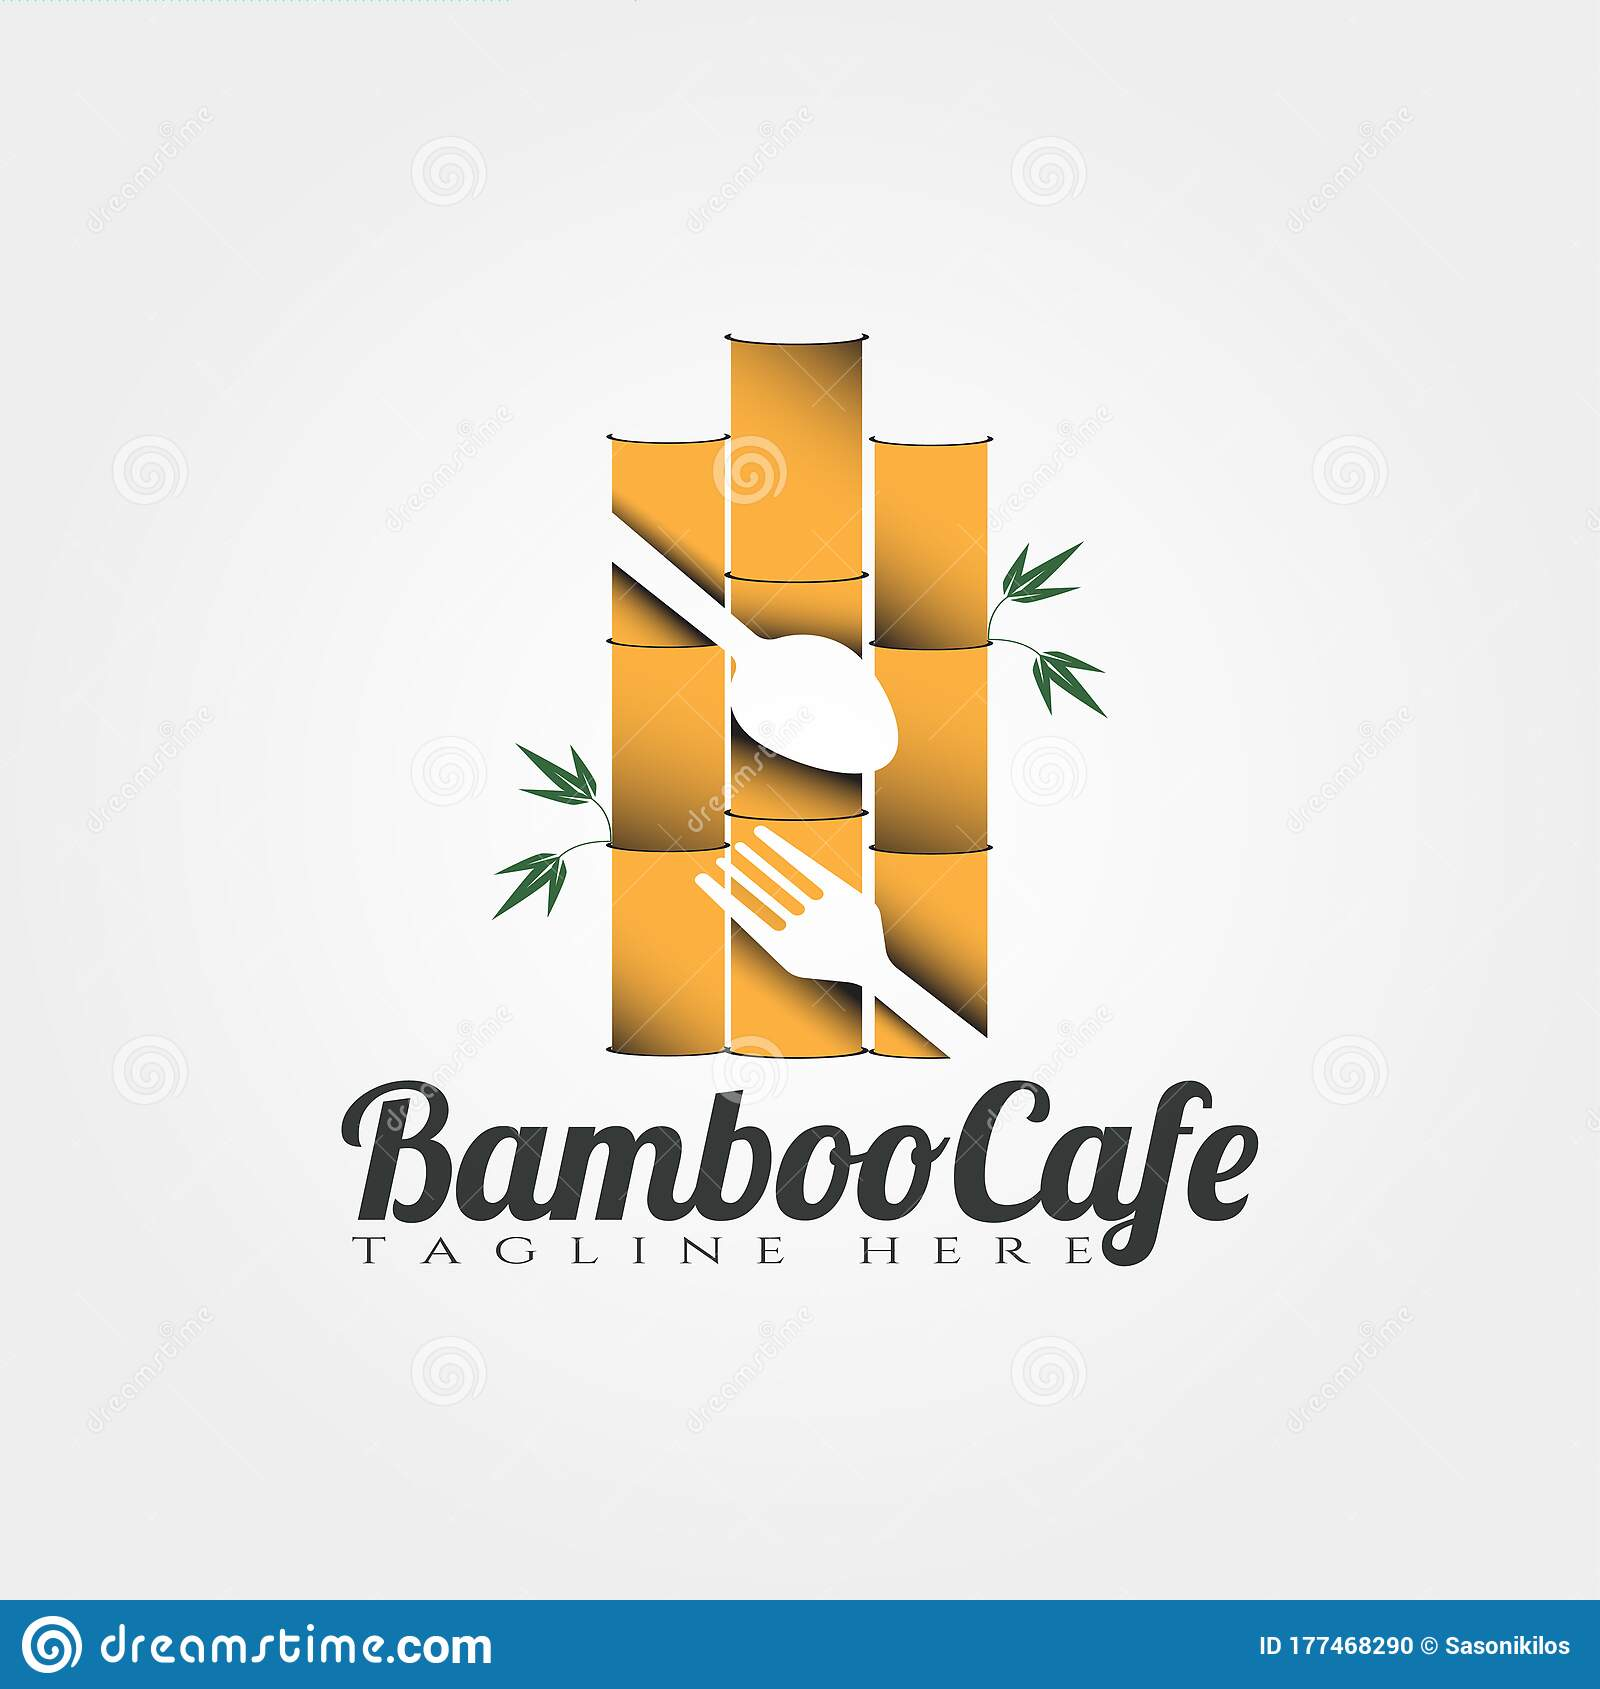 Bamboo Cafe And Restaurant Vector Logo Design Food Icon Stock Vector Illustration Of Business Agriculture 177468290